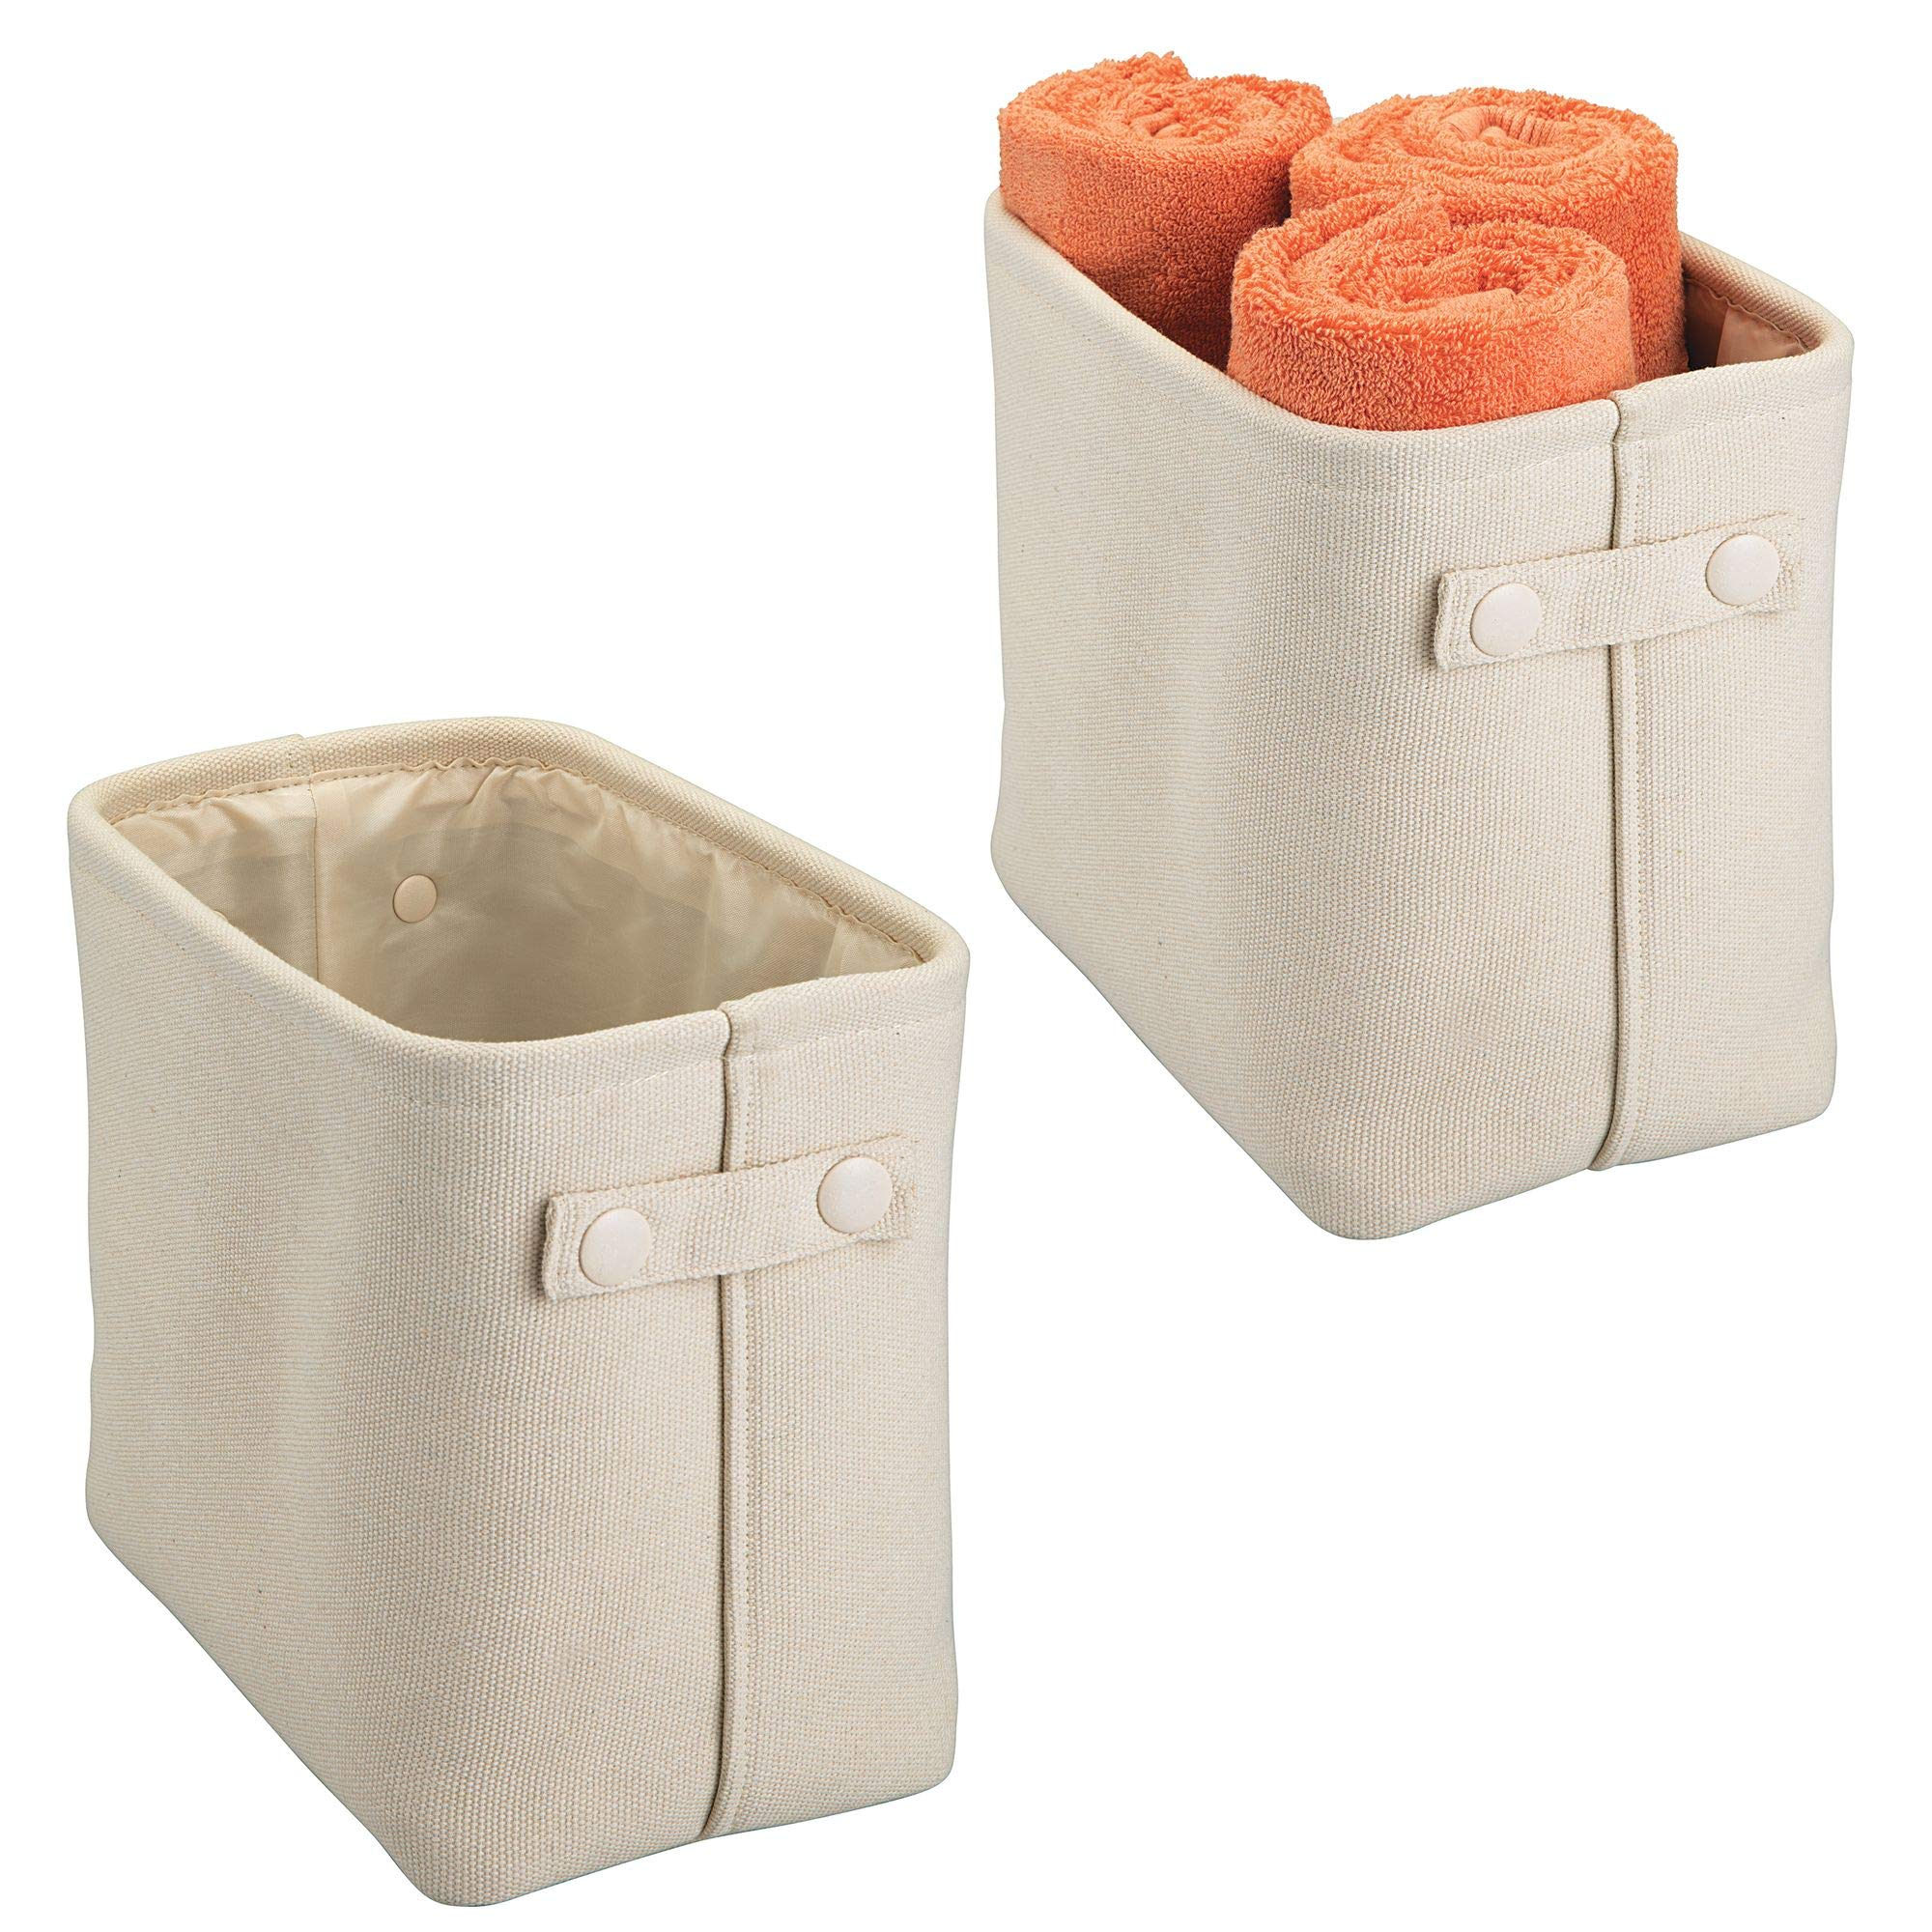 mDesign Soft Cotton Fabric Bathroom Storage Bin Basket with Coated Interior and Attached Handles - Organizer for Closets, Cabinets, Shelves - Pack of 2, Rectangular with Textured Weave, Cream